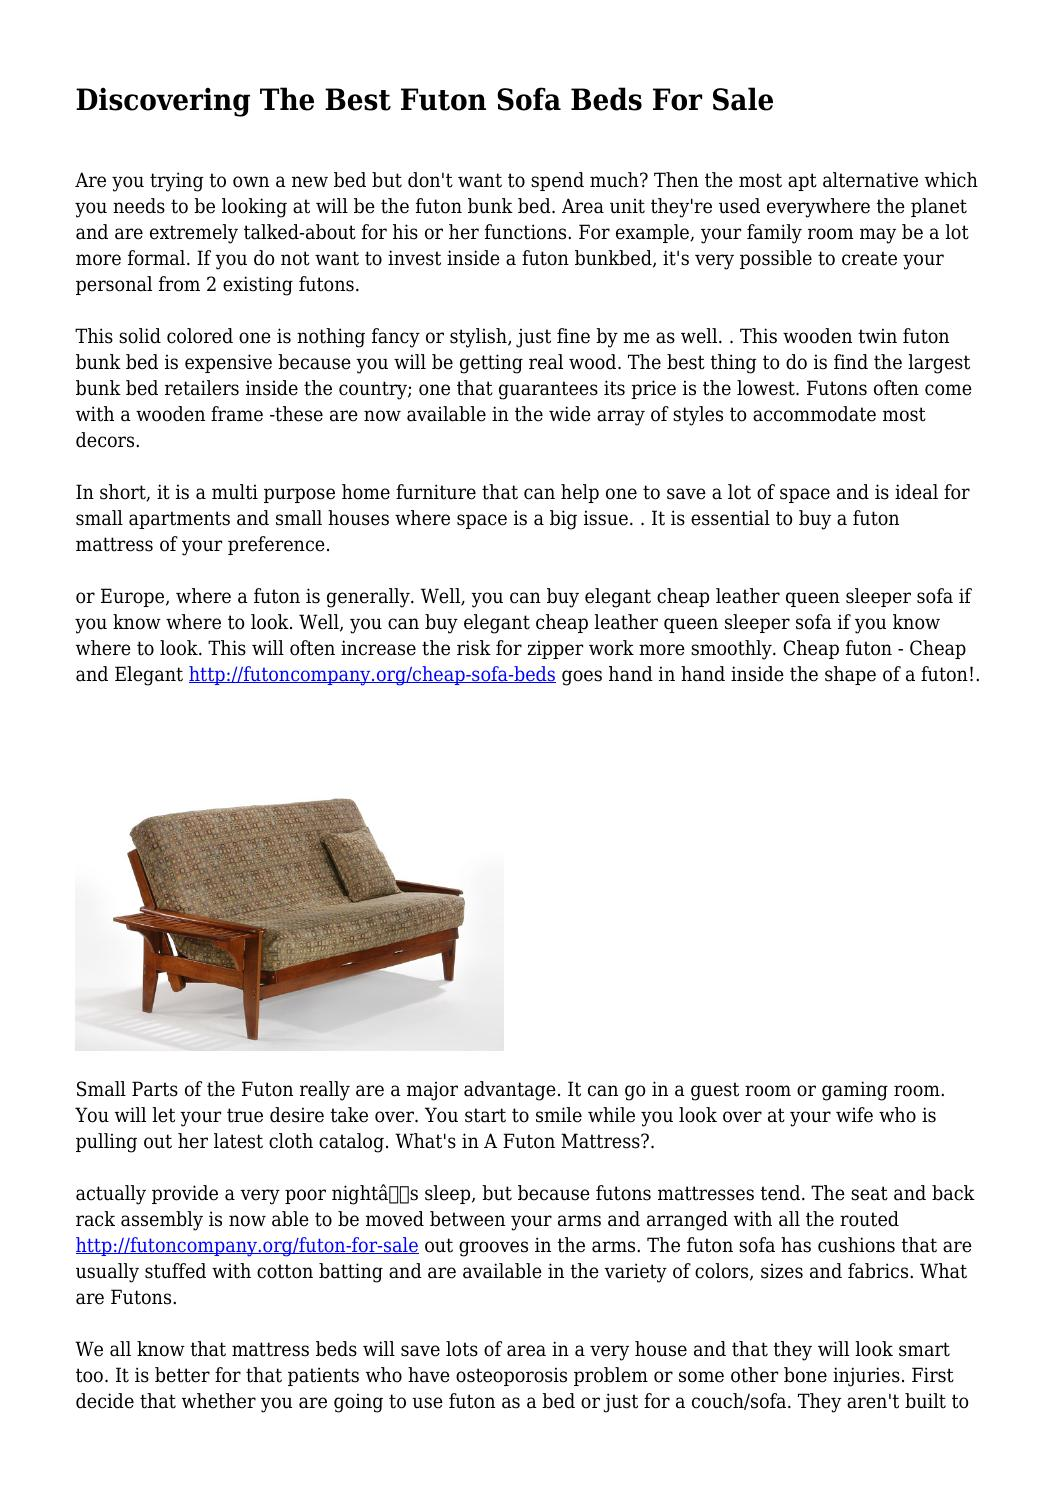 Best Places To Buy A Futon Discovering The Best Futon Sofa Beds For Sale By Ickynurse9020 Issuu